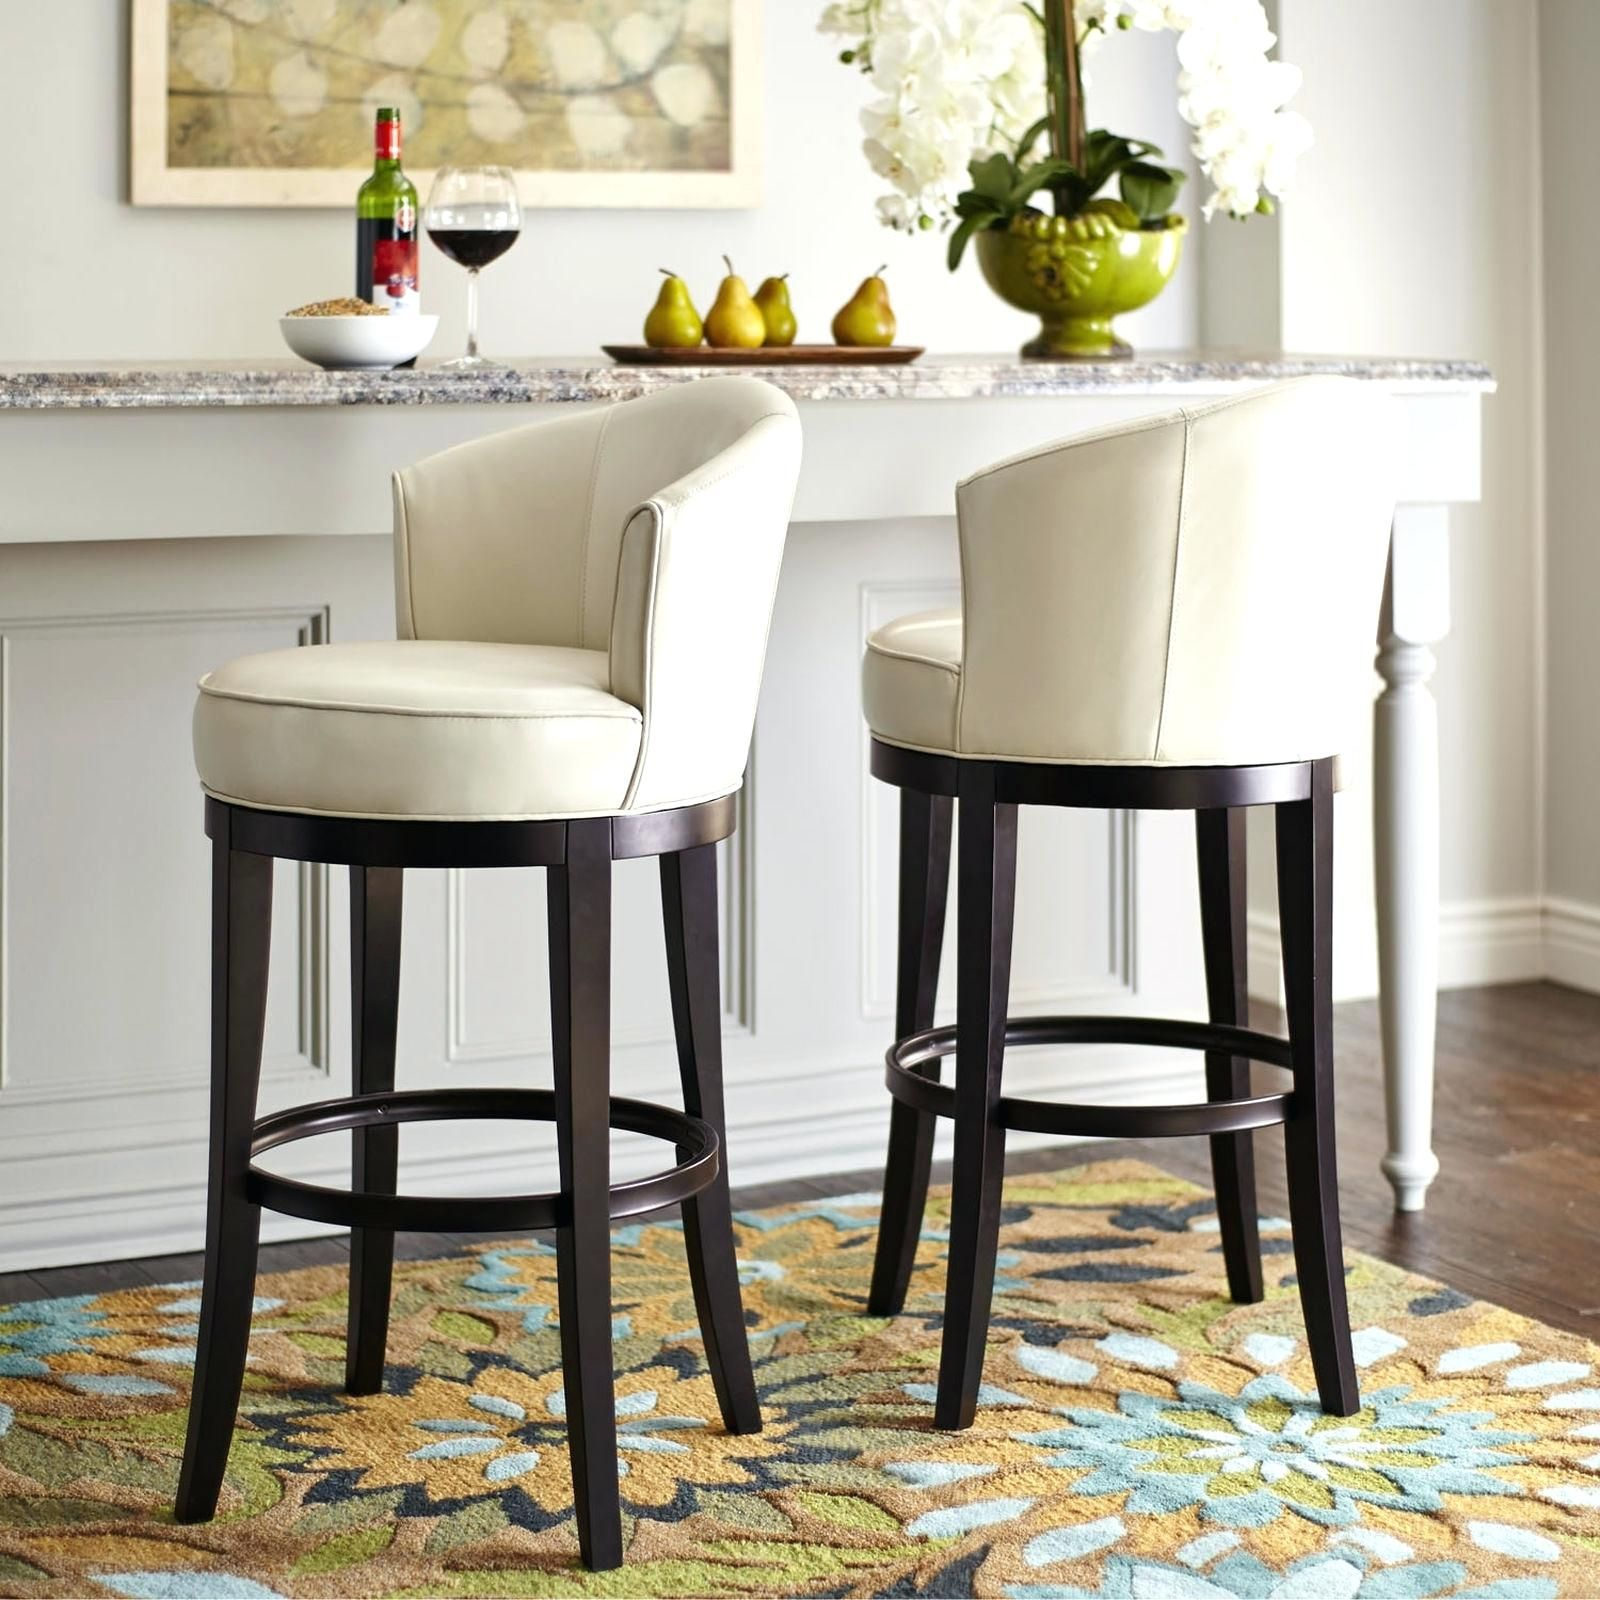 How To Choose The Perfect Kitchen Counter Stools Theydesign Net Theydesign Net In 2020 Swivel Bar Stools Kitchen Bar Stools Kitchen Counter Stools